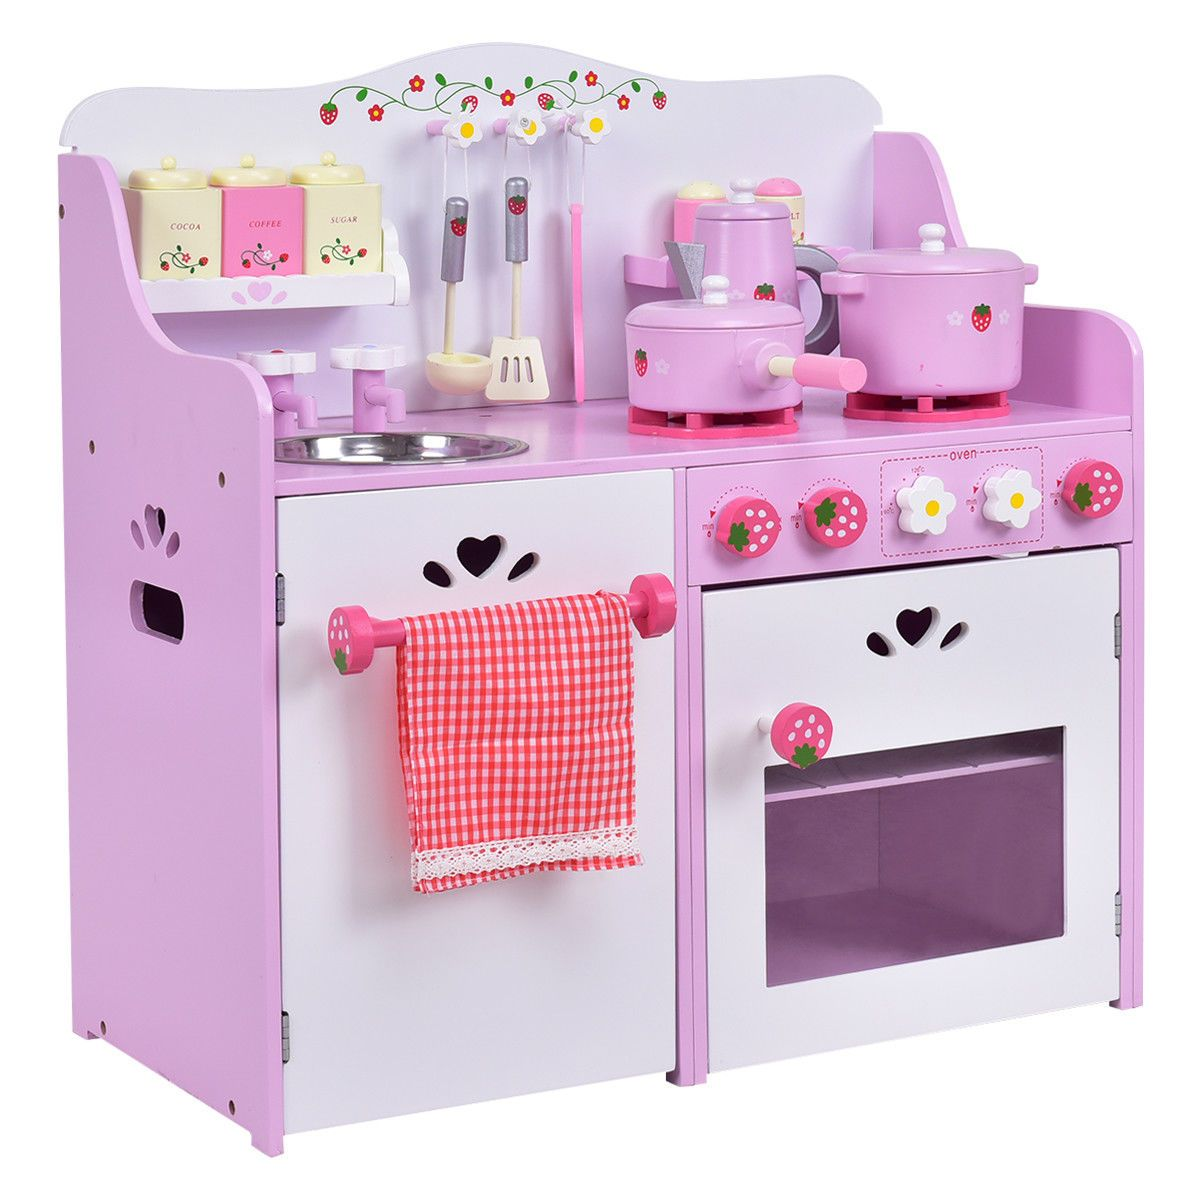 Kids Wooden Kitchen Toy Strawberry Pretend Cooking Playset Toy